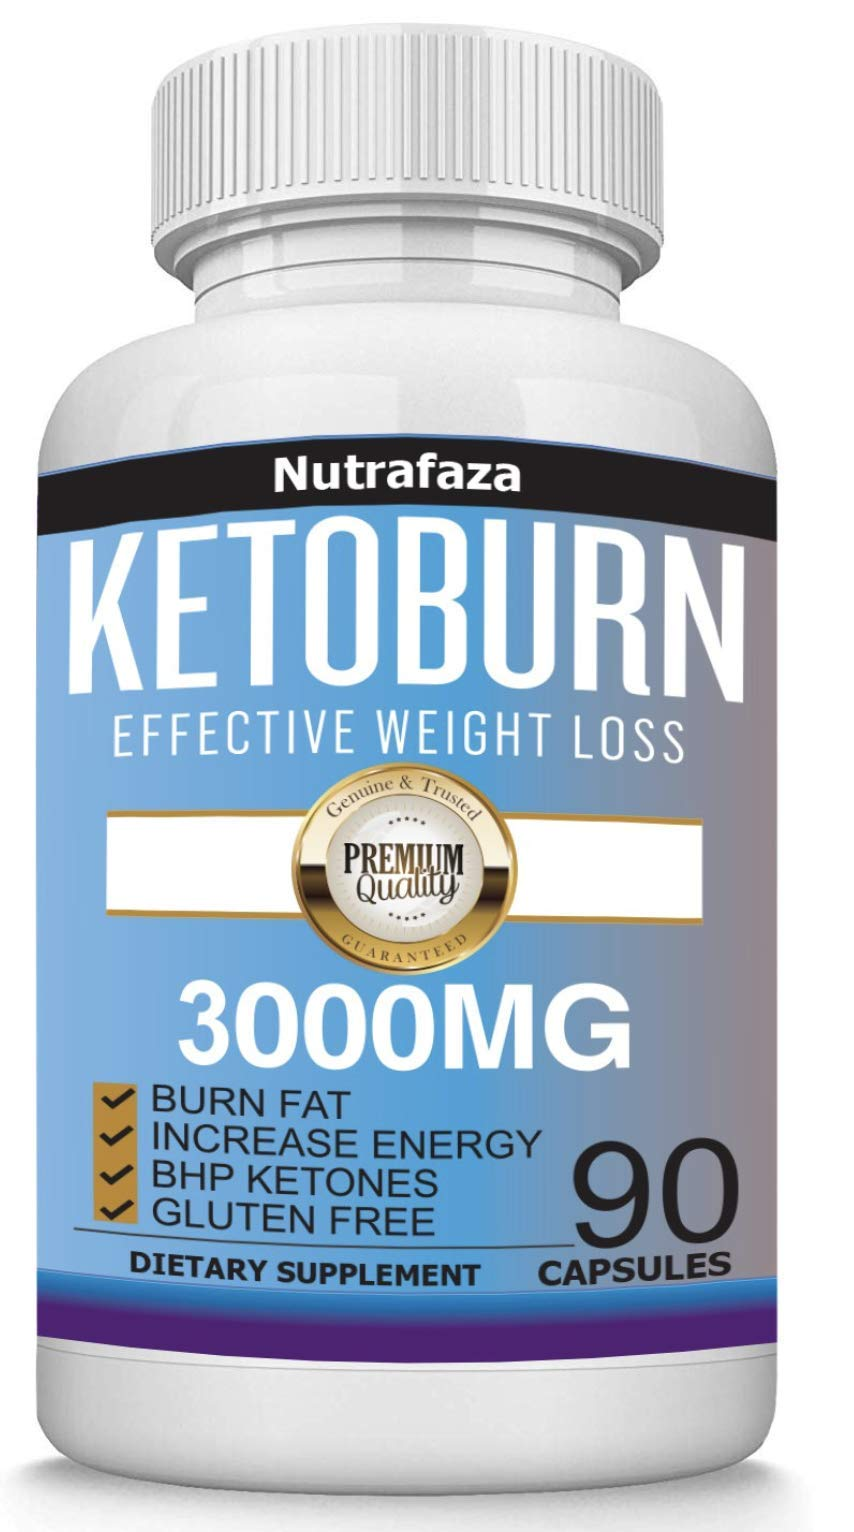 Keto Diet Pills - Supports Healthy Weight Loss, Boost in Energy, Mental Clarity and Focus - Extra Strength Keto Burn Formula